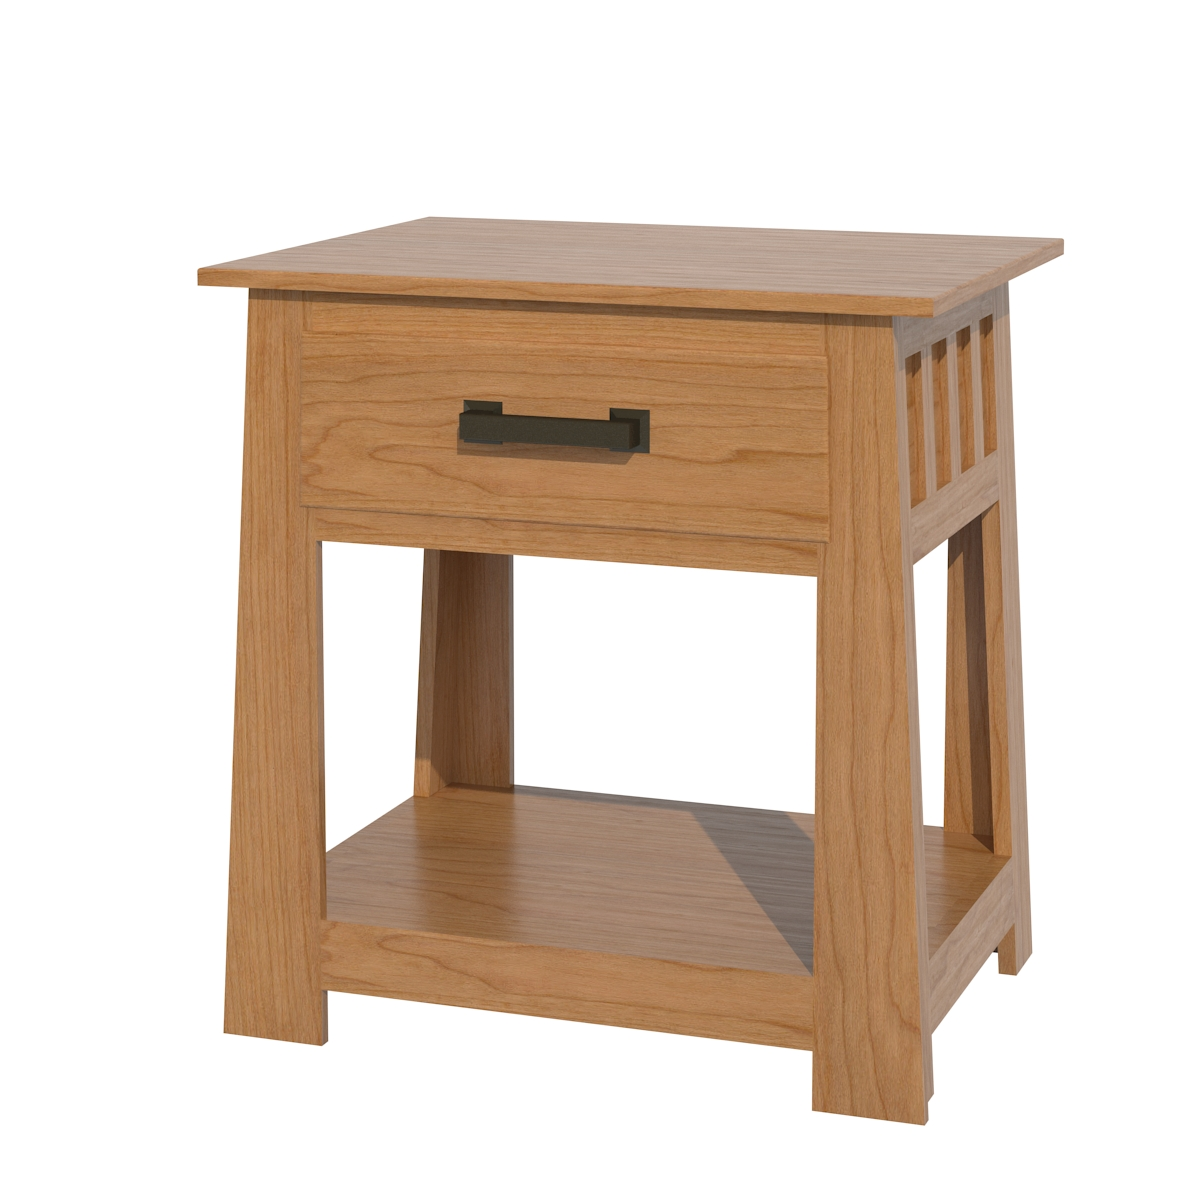 Teton Nightstand With Shelves  Solid Wood Nightstand in the Teton ...